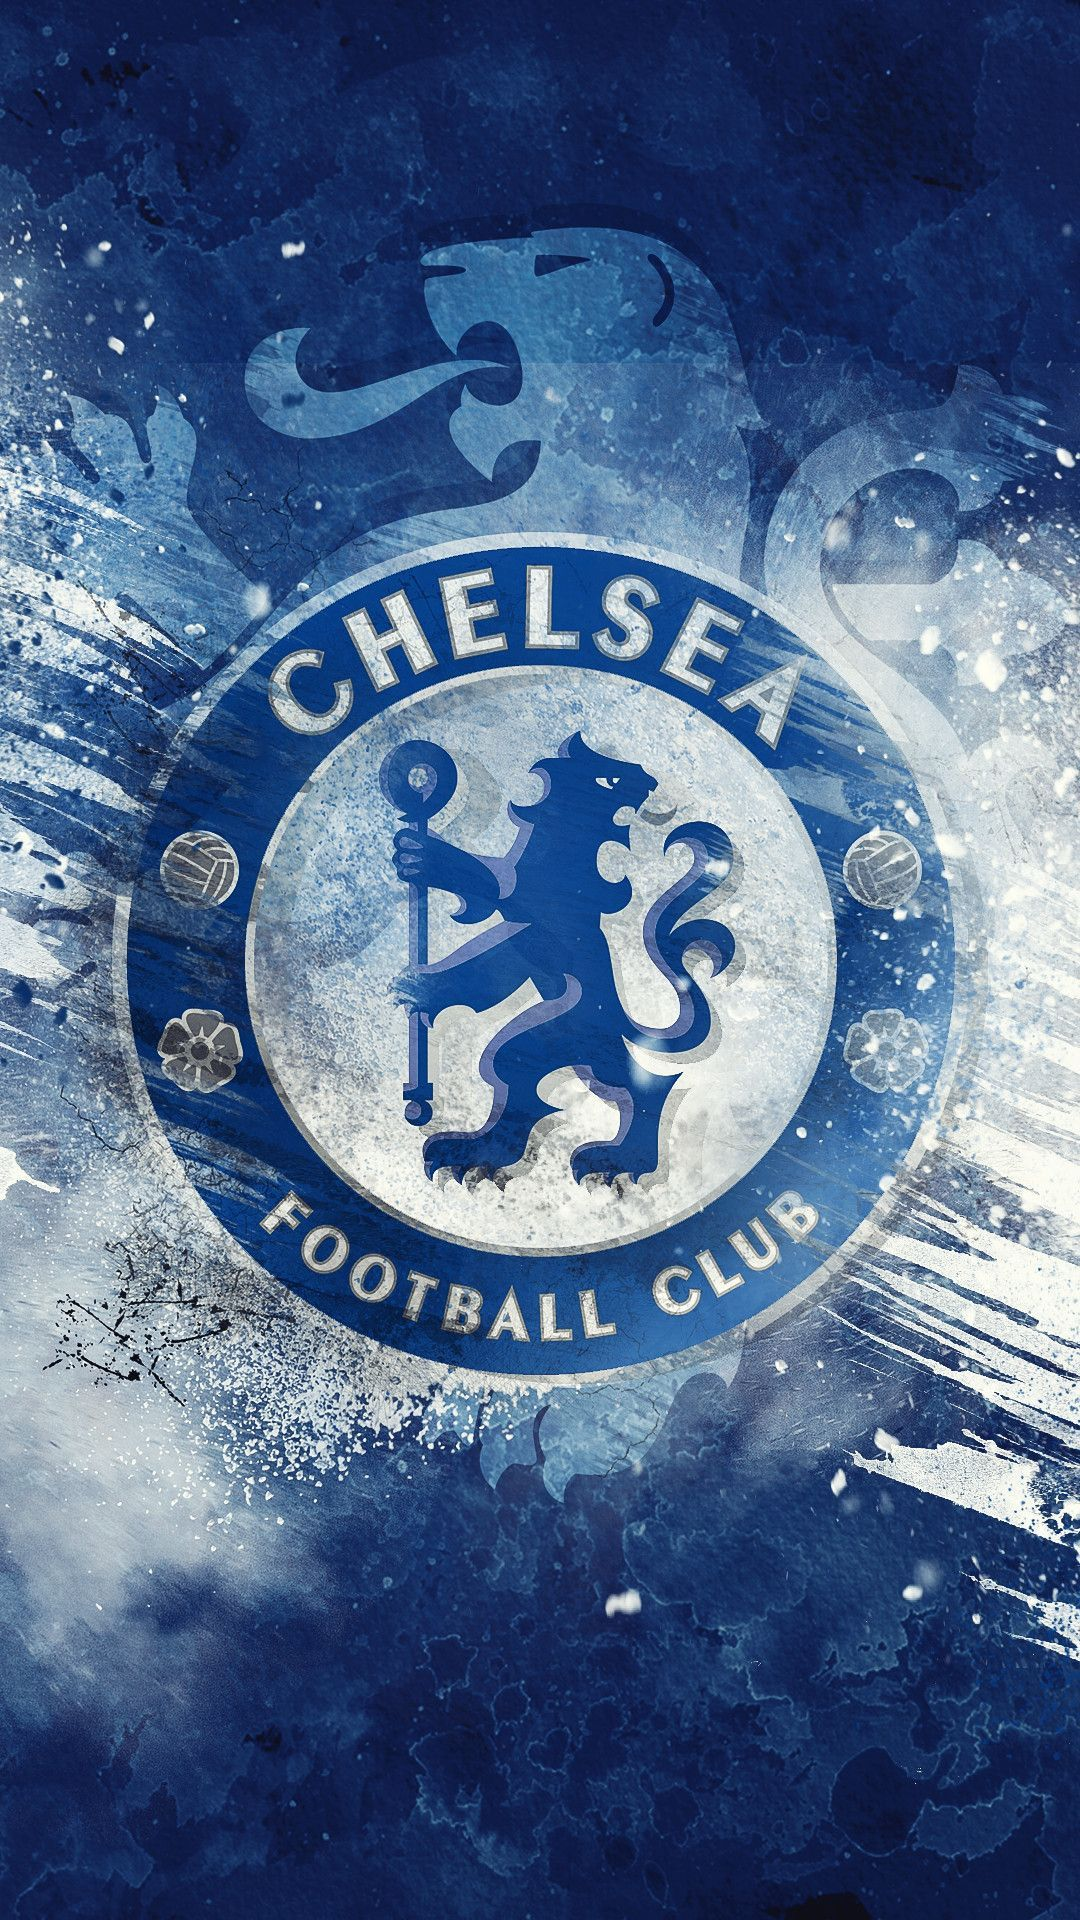 1080x1920 Chelsea HD Logo Wallpaper by Kerimov23【2020